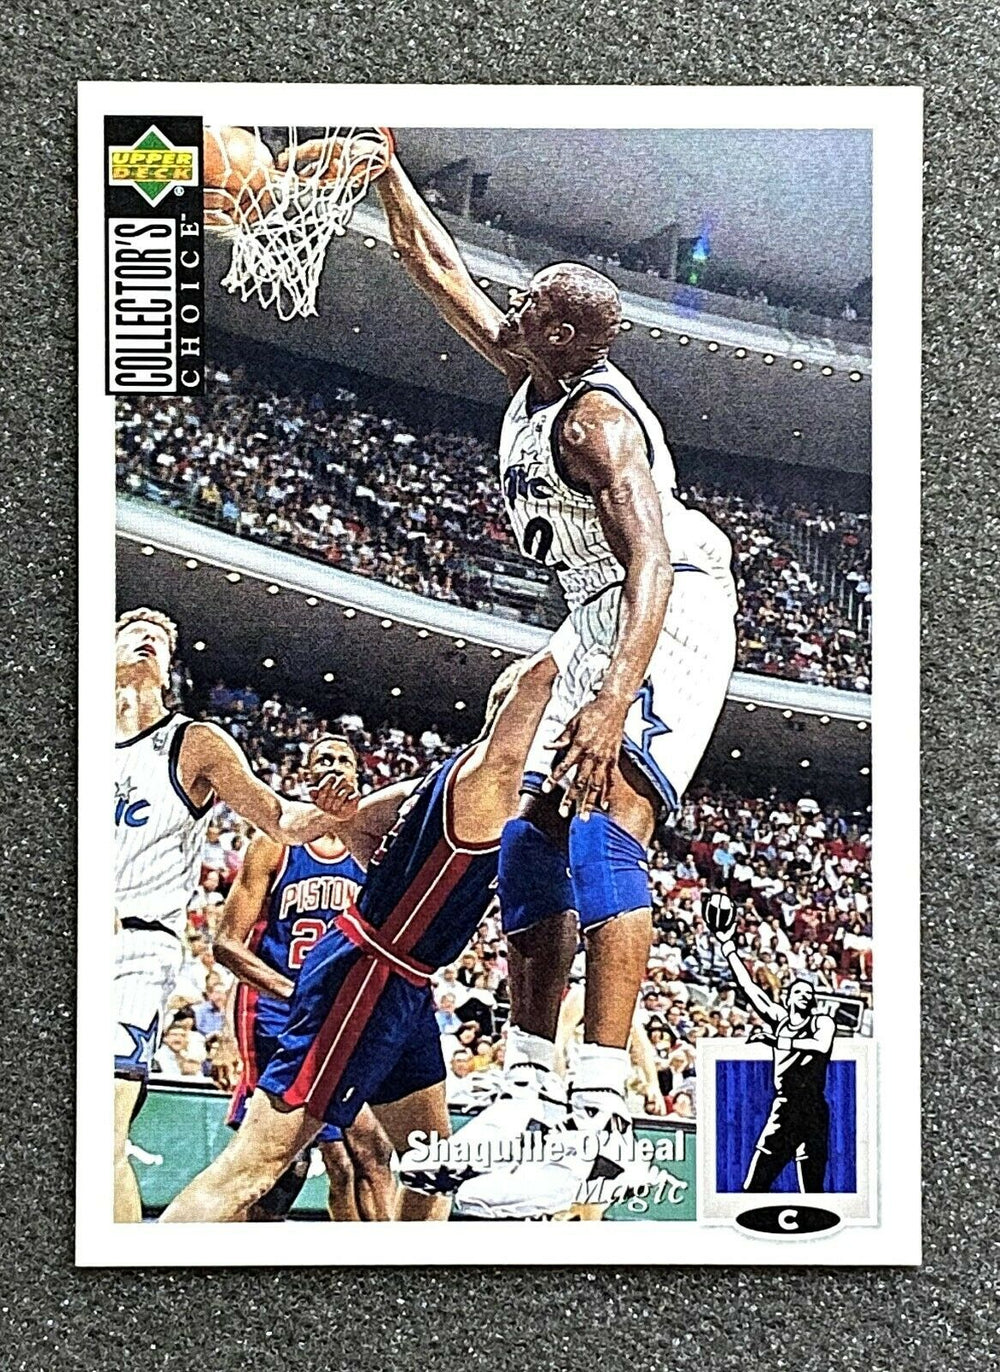 Shaquille O'Neal 1994 1995 Upper Deck Collector's Choice International Japanese Version Series Mint Card #232